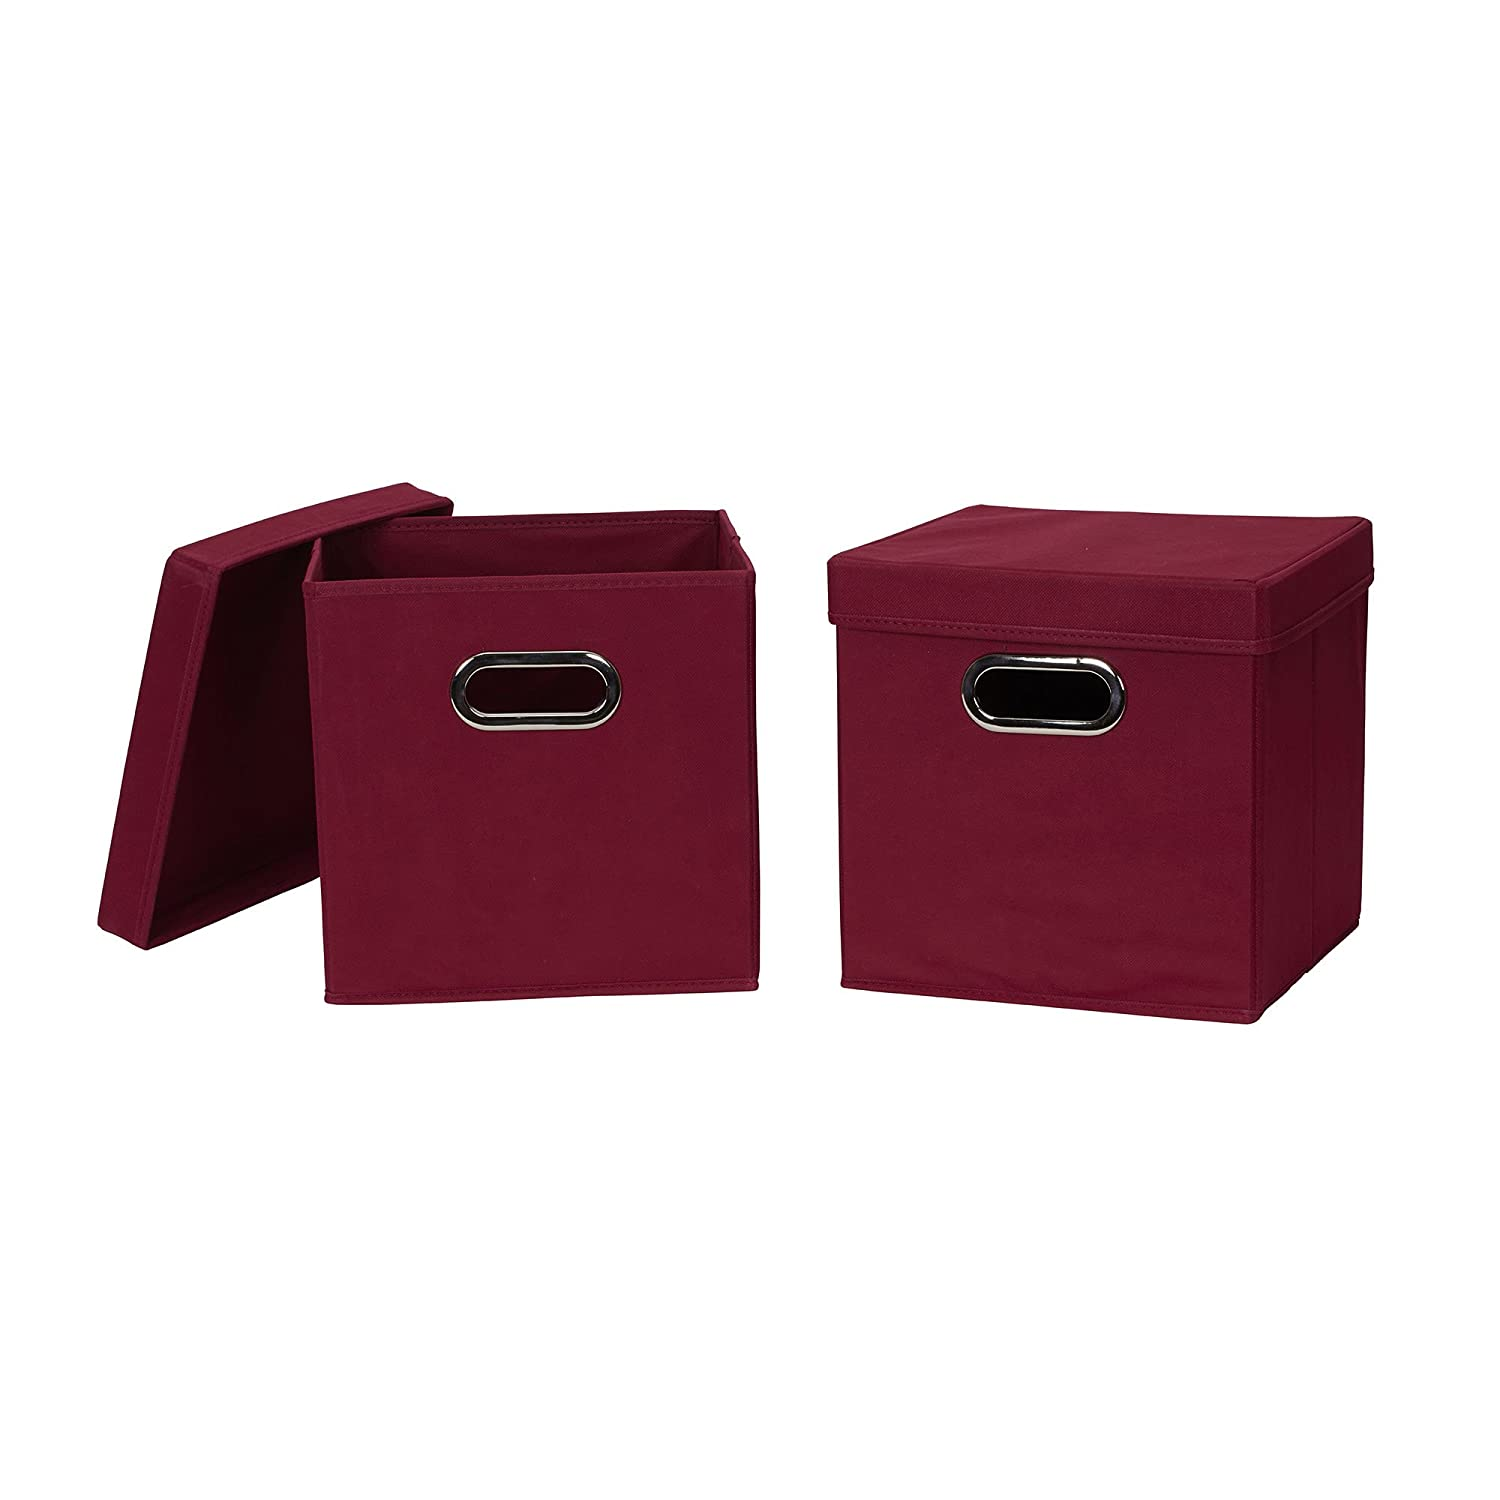 Household Essentials 43 model Collapsible Fabric Storage Cube Bins with Lid, 2 Pack, Burgundy